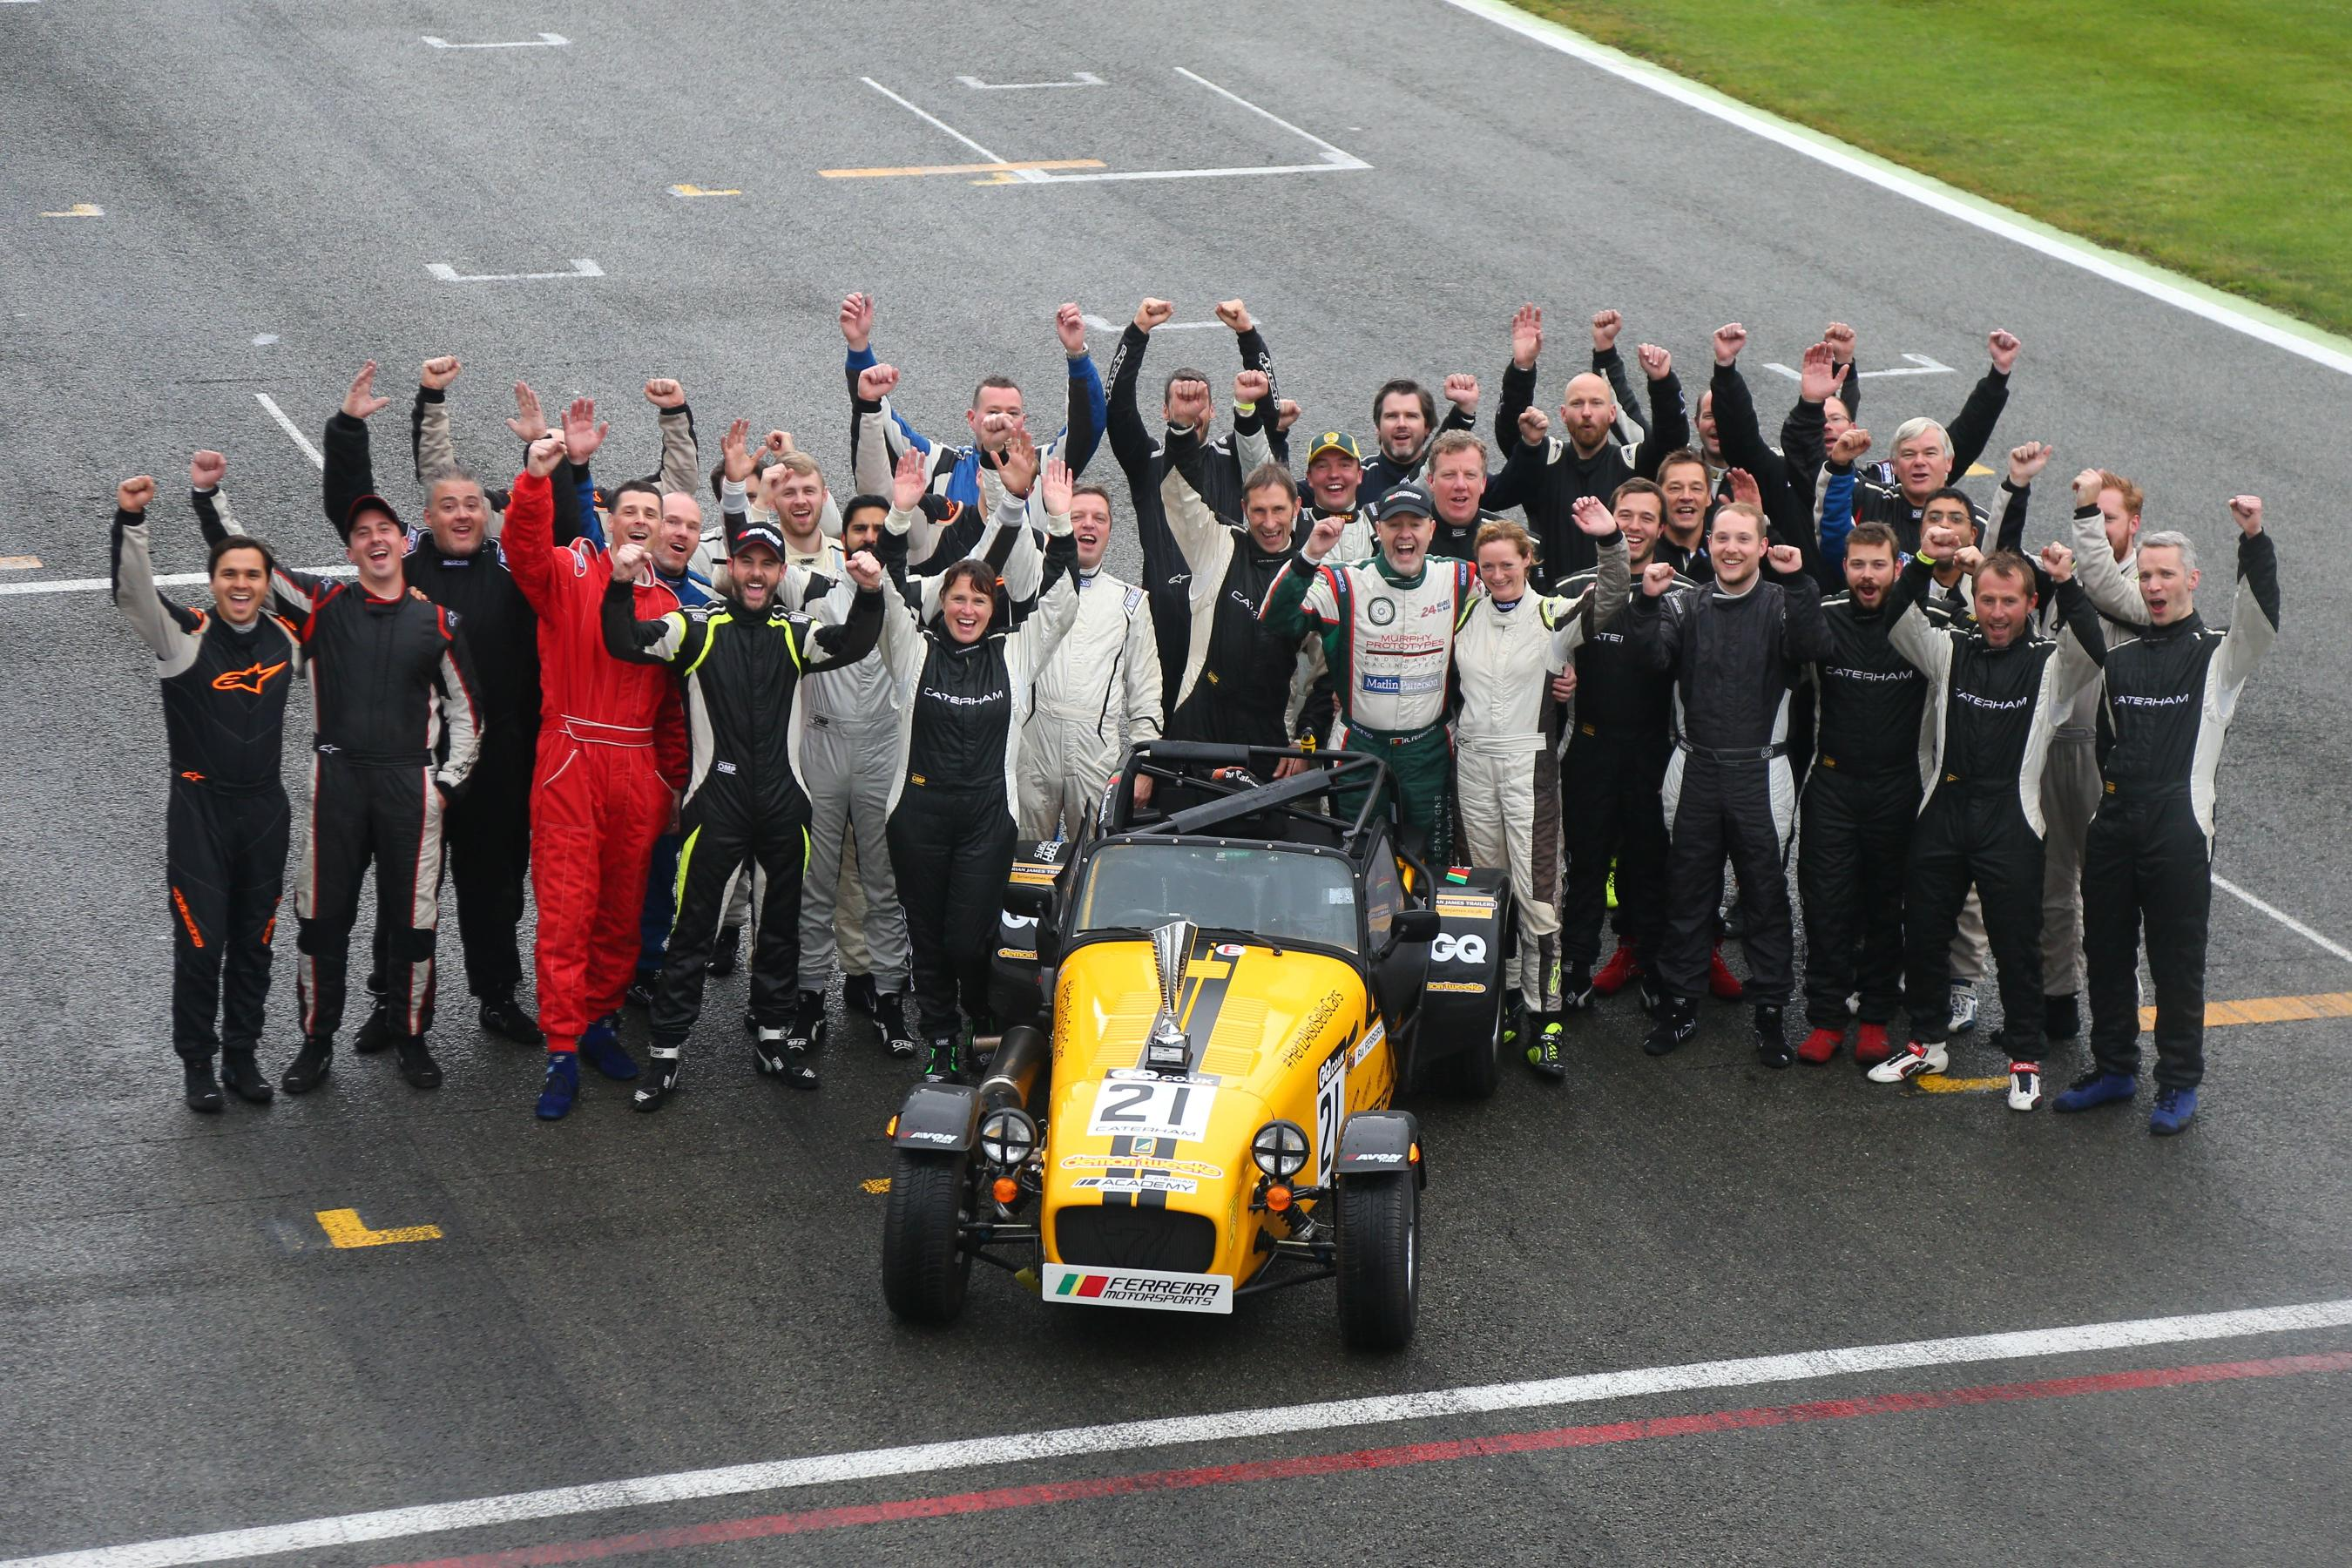 Caterham Closes Season at Silverstone - Just British